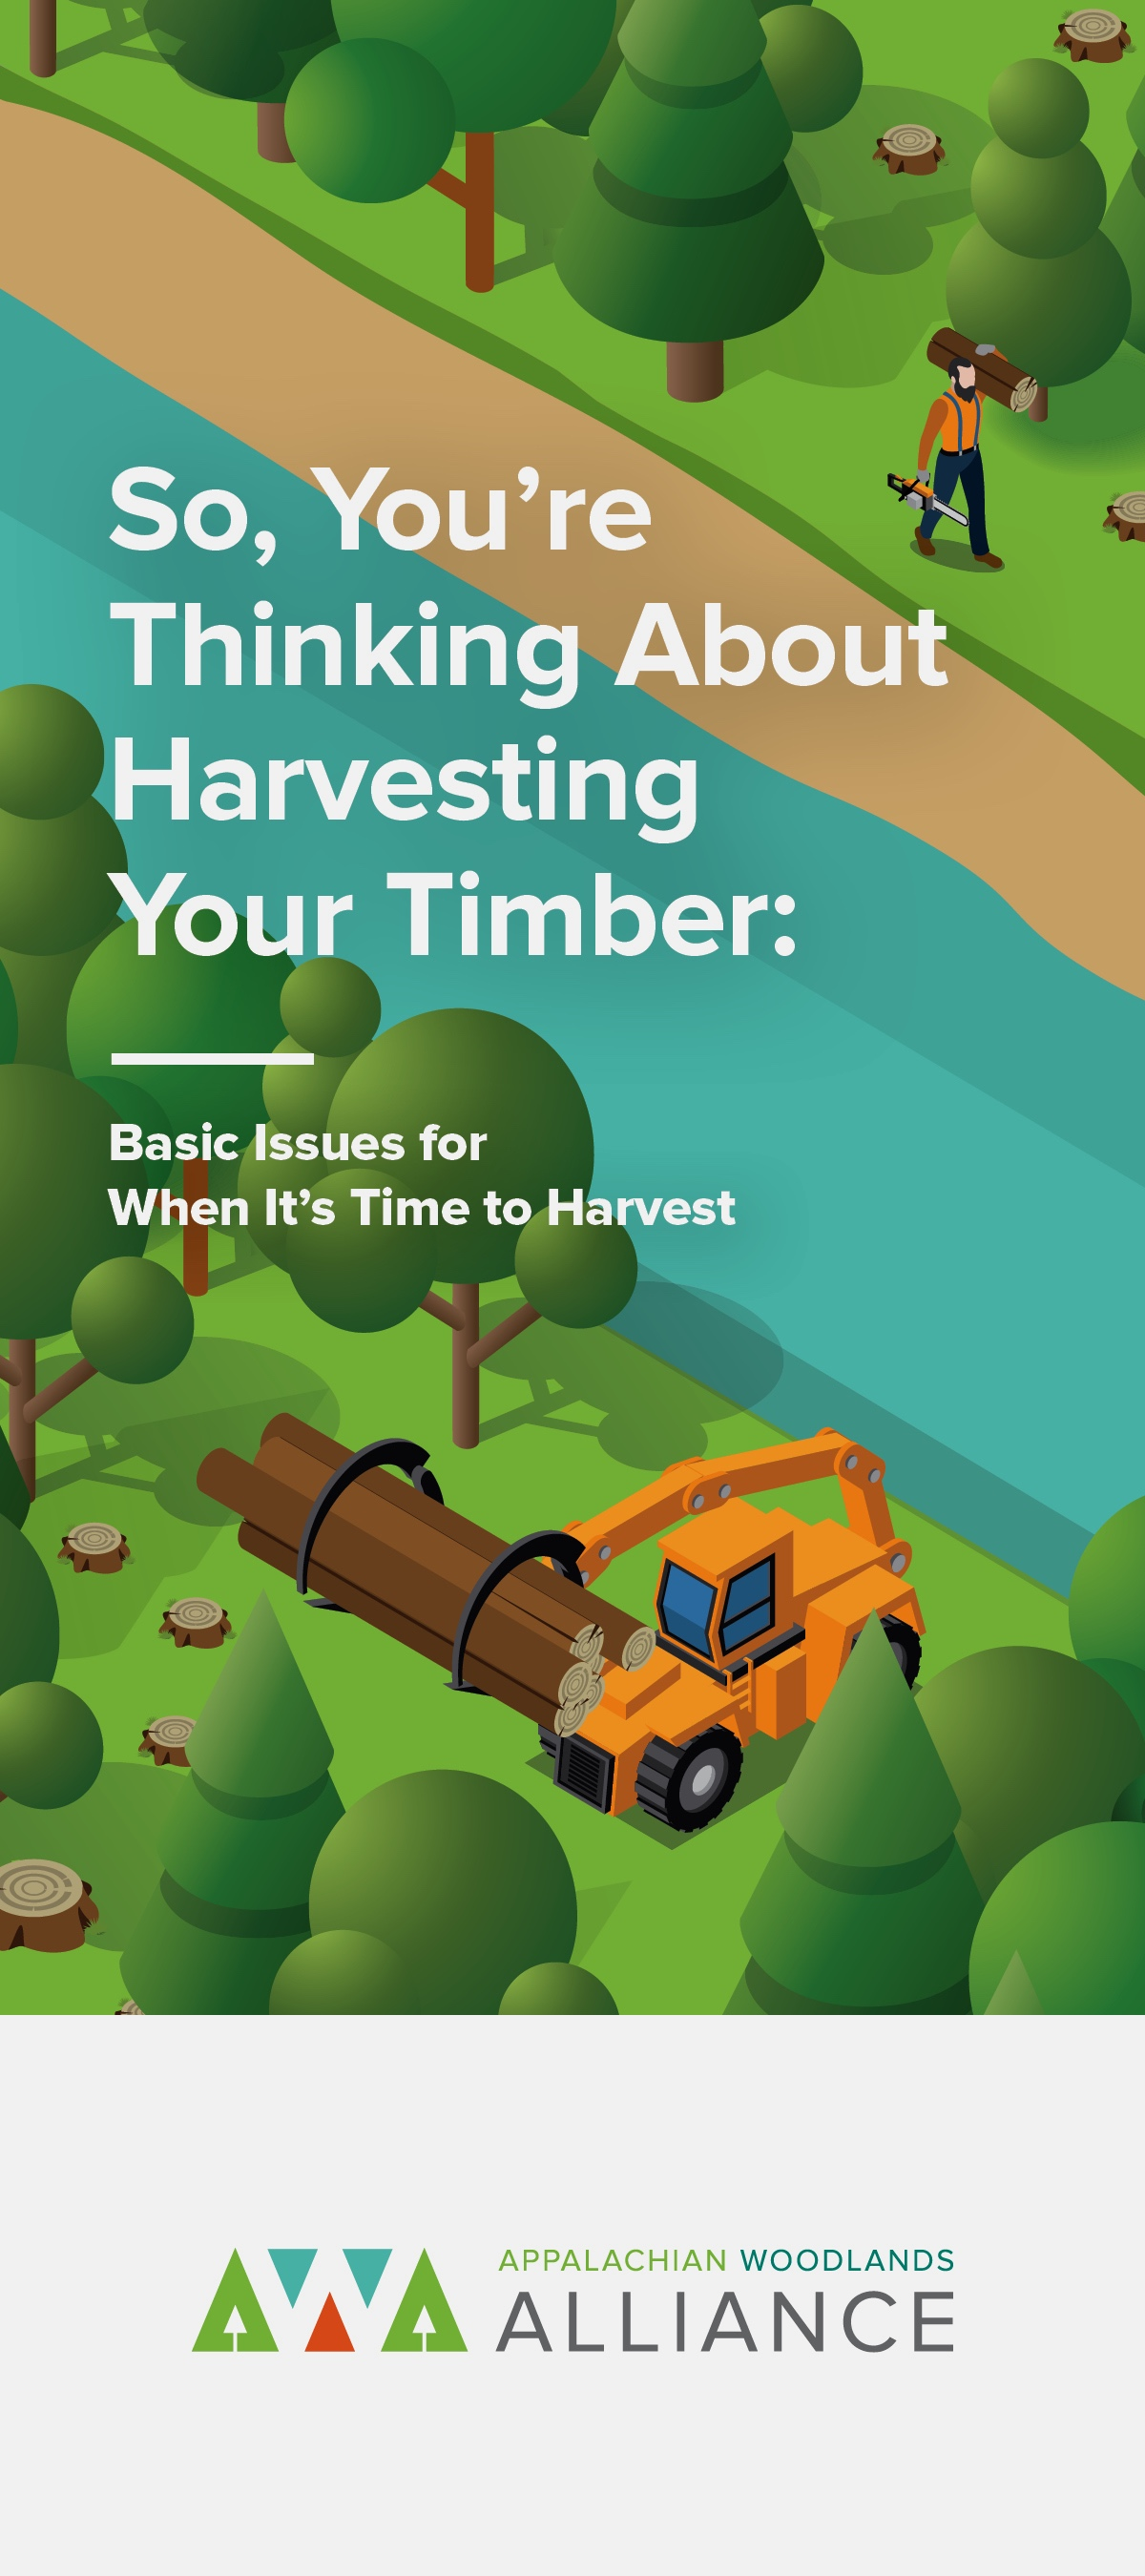 So, You're Thinking About Harvesting Your Timber: Basic Issues for When It's Time to Harvest -